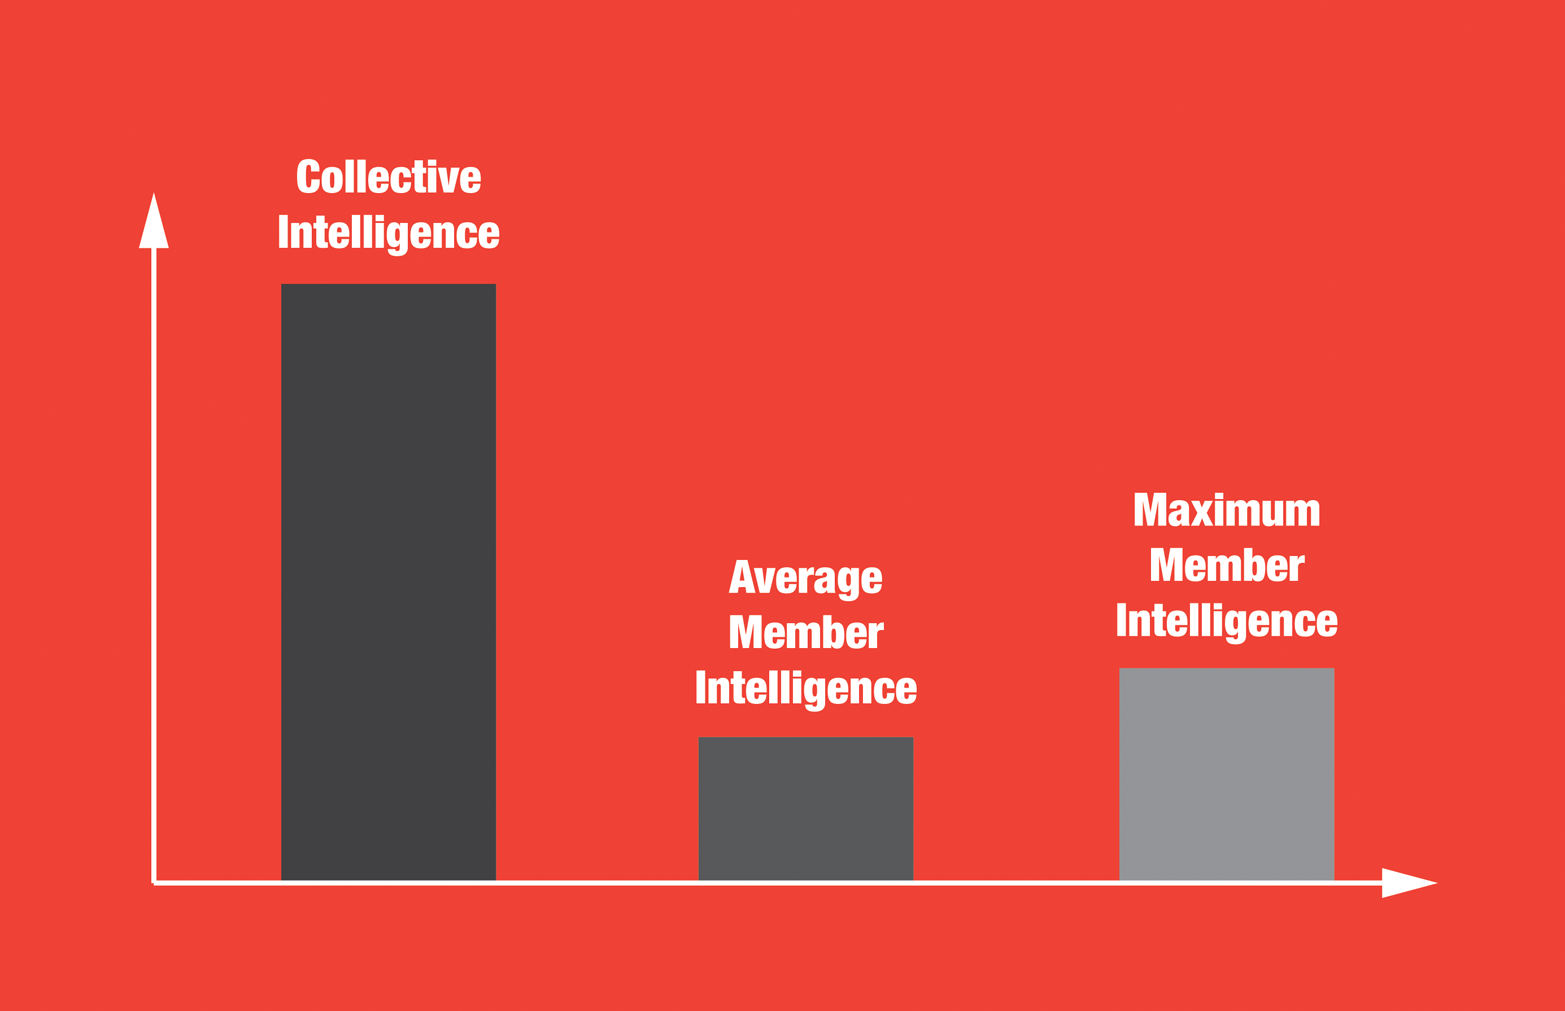 Measuring collective intelligence